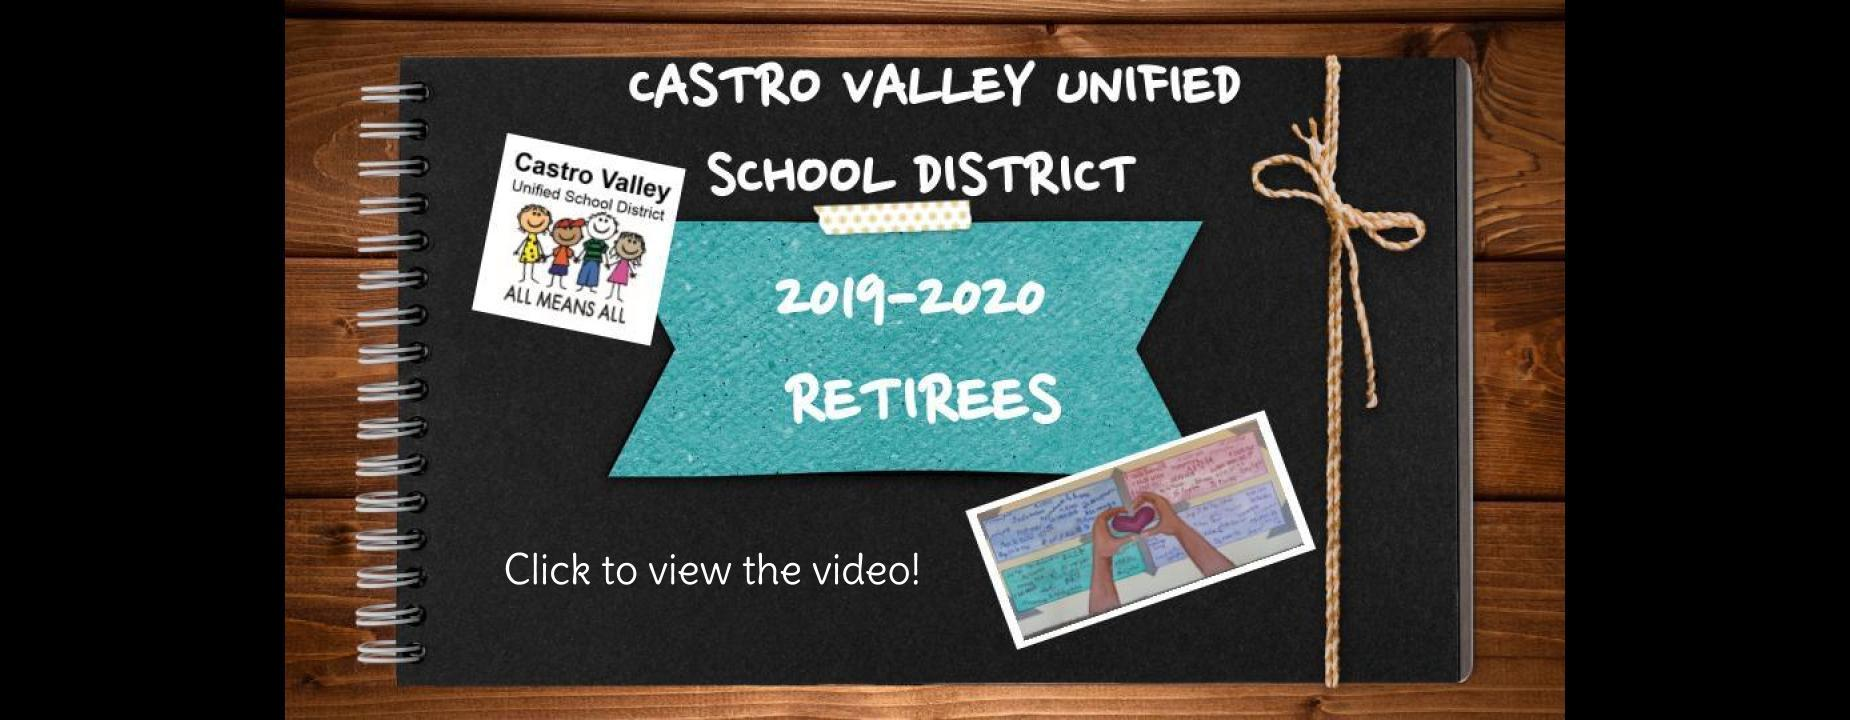 Retiree Video